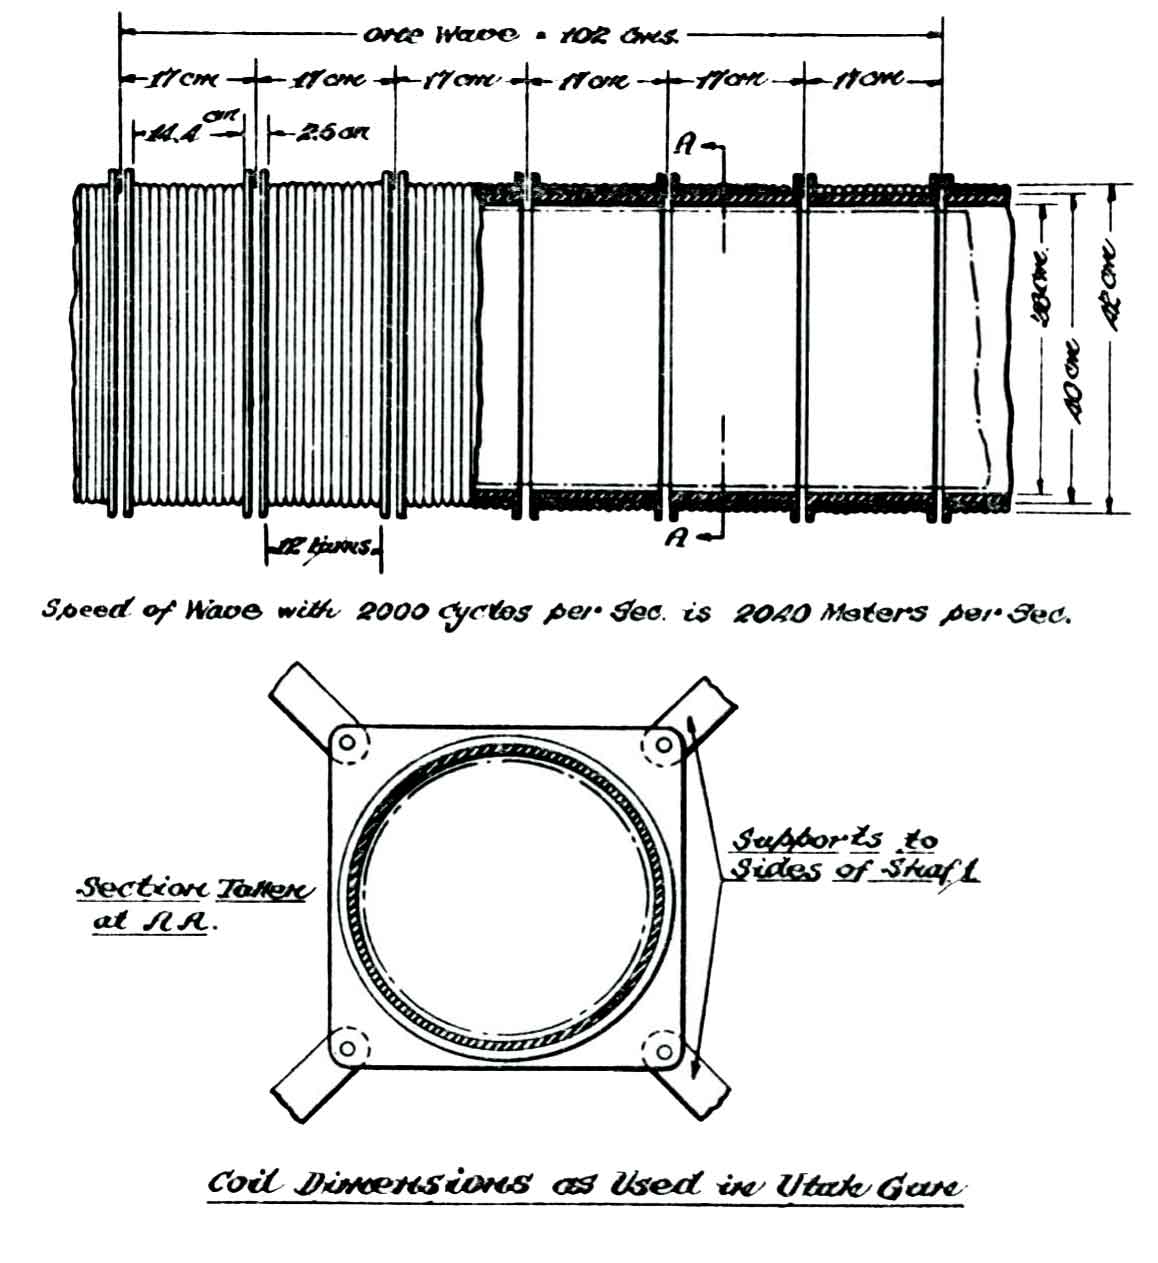 Ac Linear Induction Motor Thrust Constant Coil Gun Diagram Figure 1 Dimensions Used In The Utah